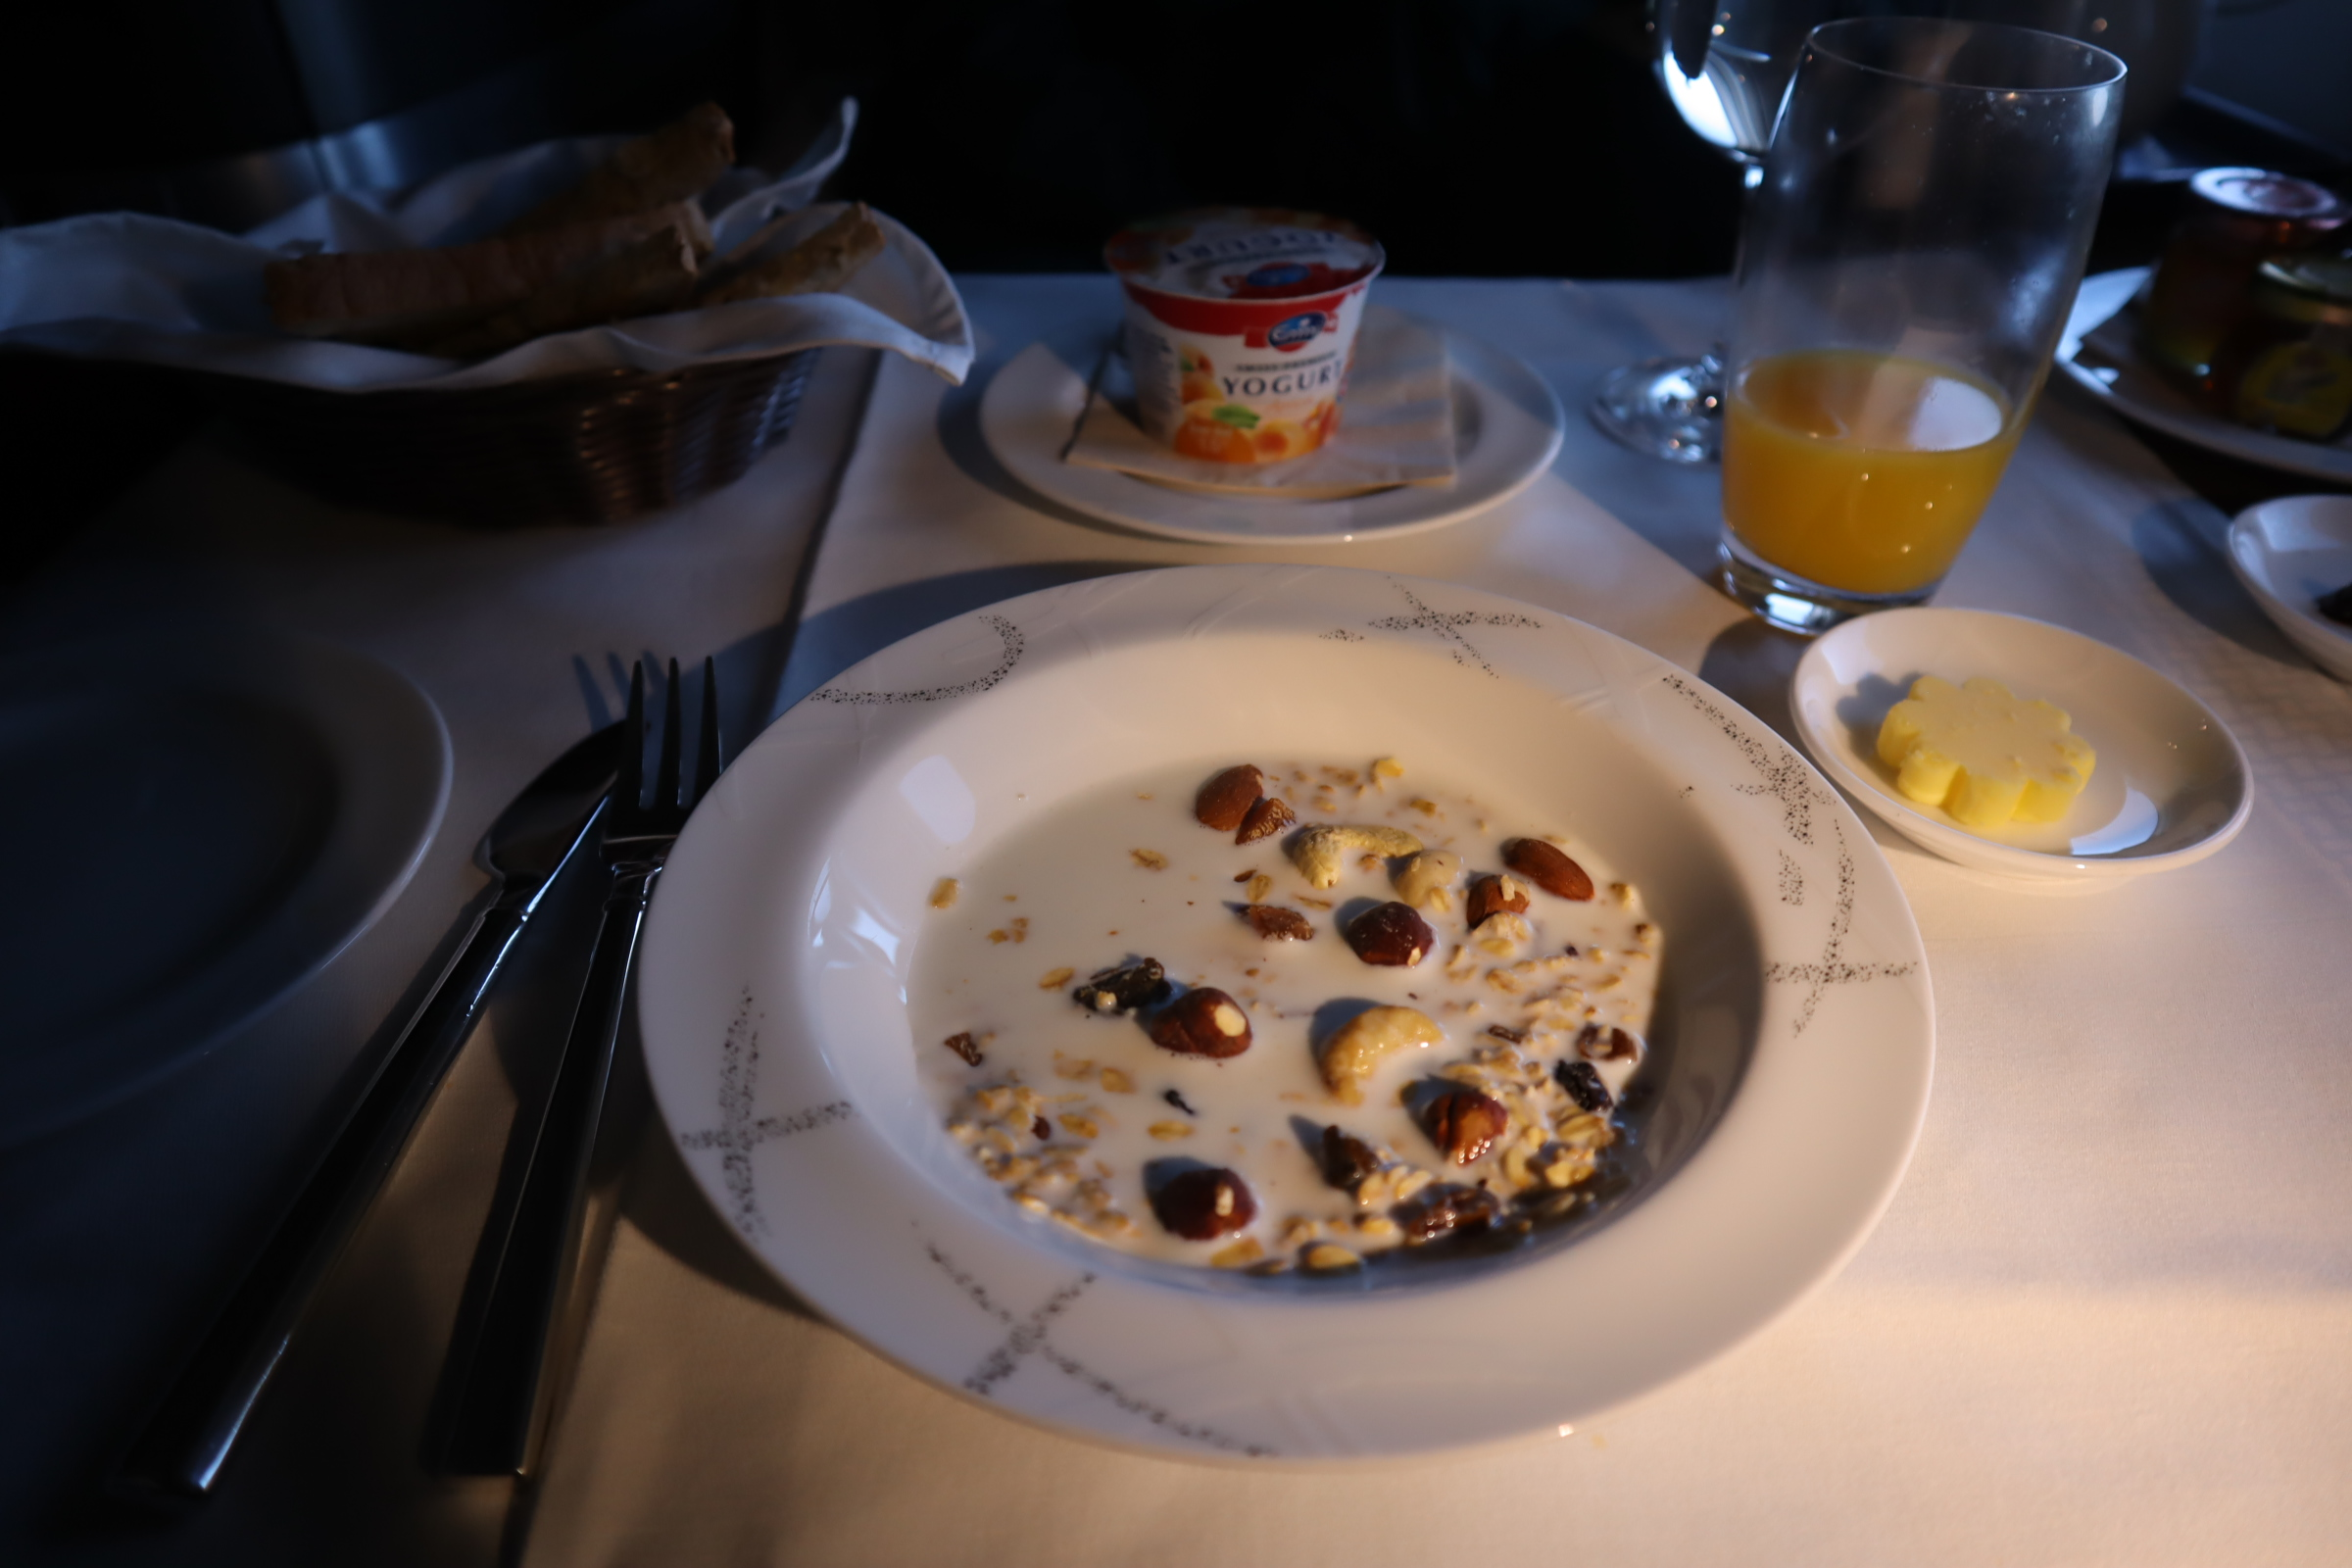 Cathay Pacific First Class – Muesli and yogurt